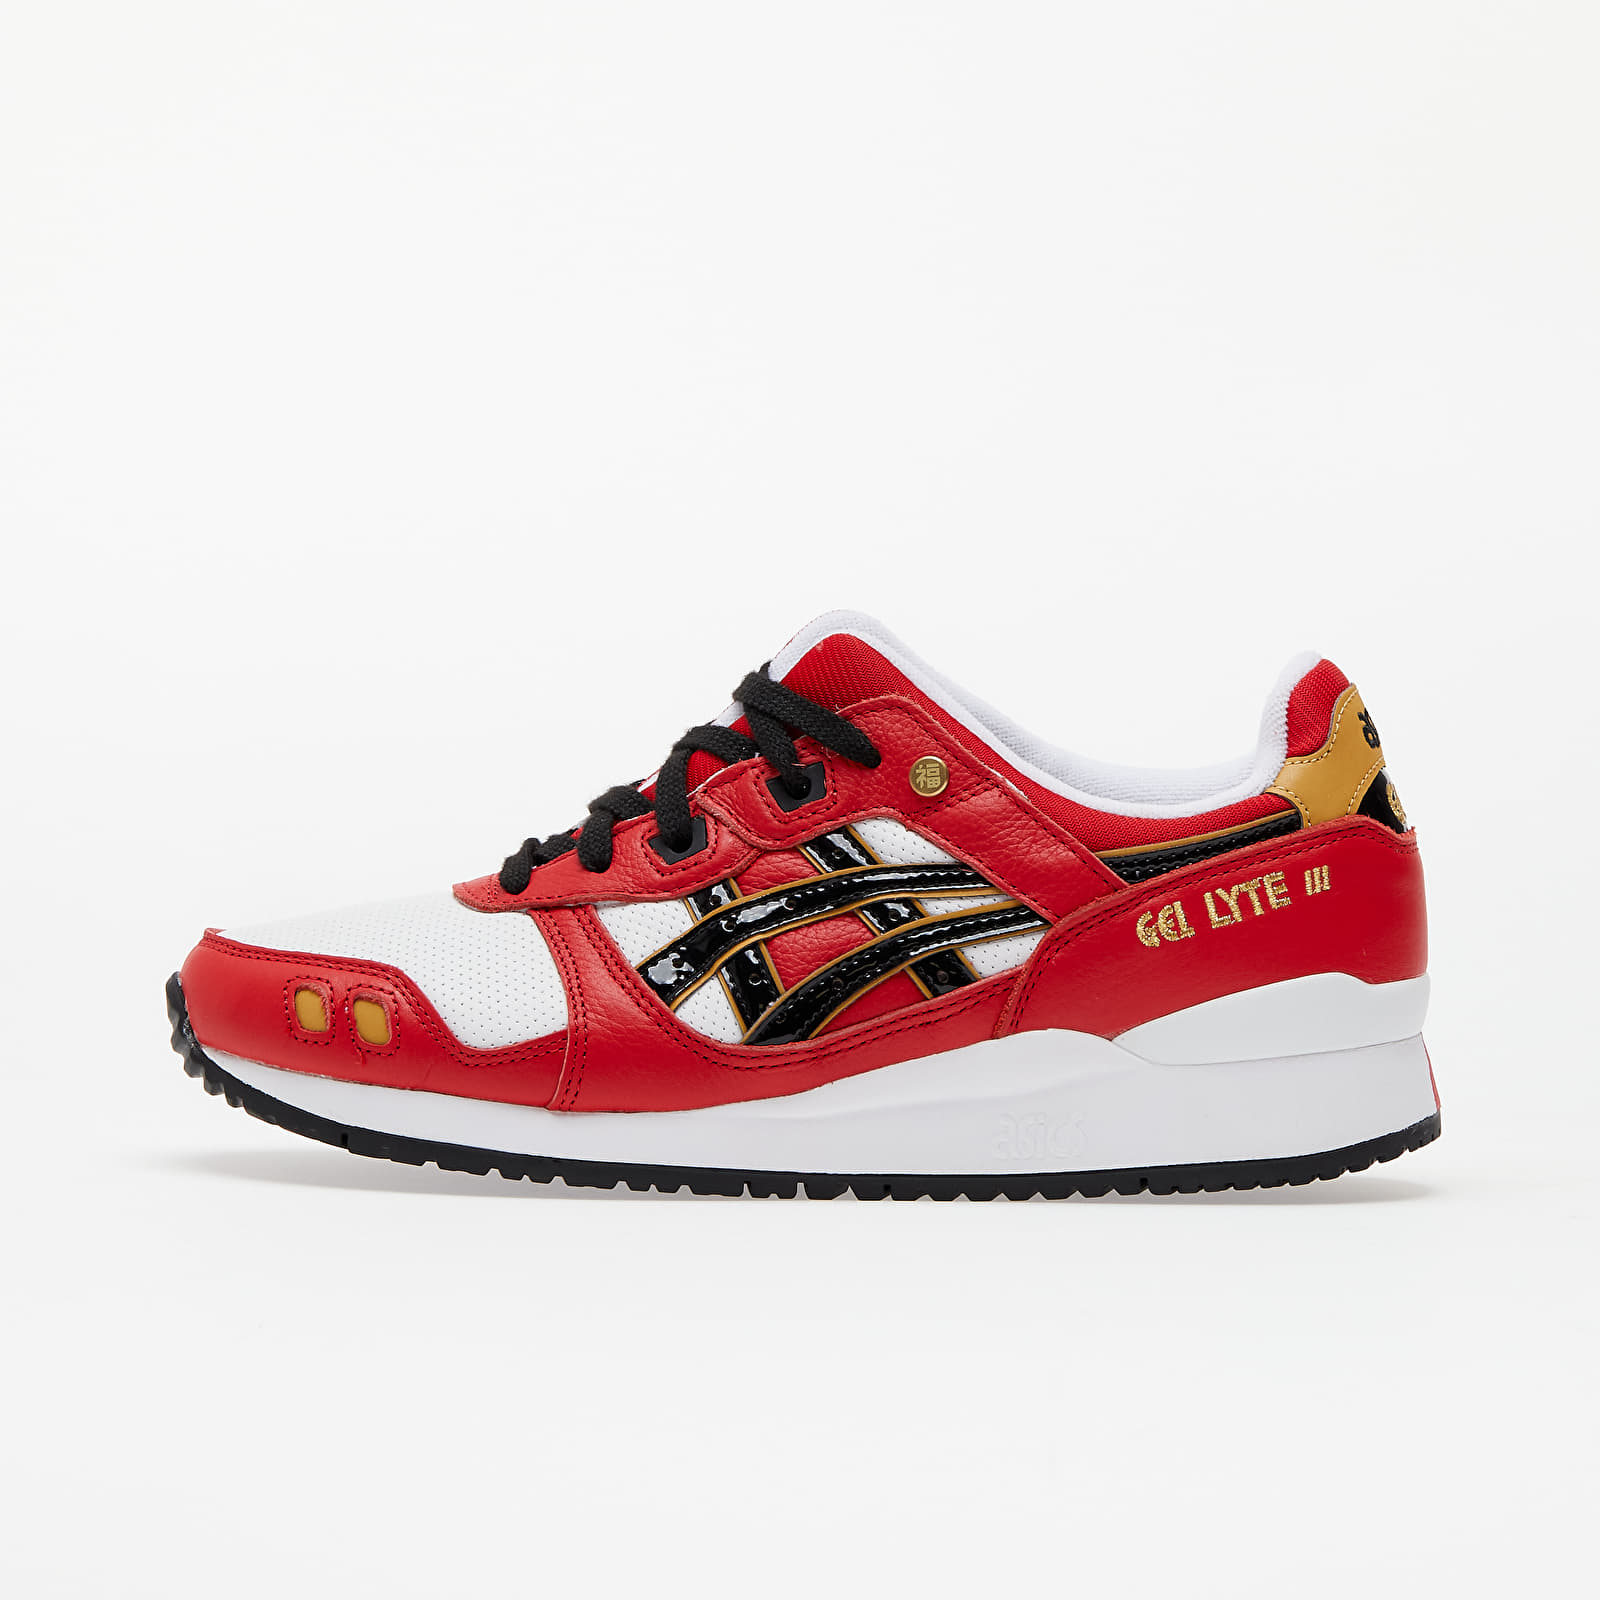 Asics Gel-Lyte III OG Classic Red/ Black EUR 42